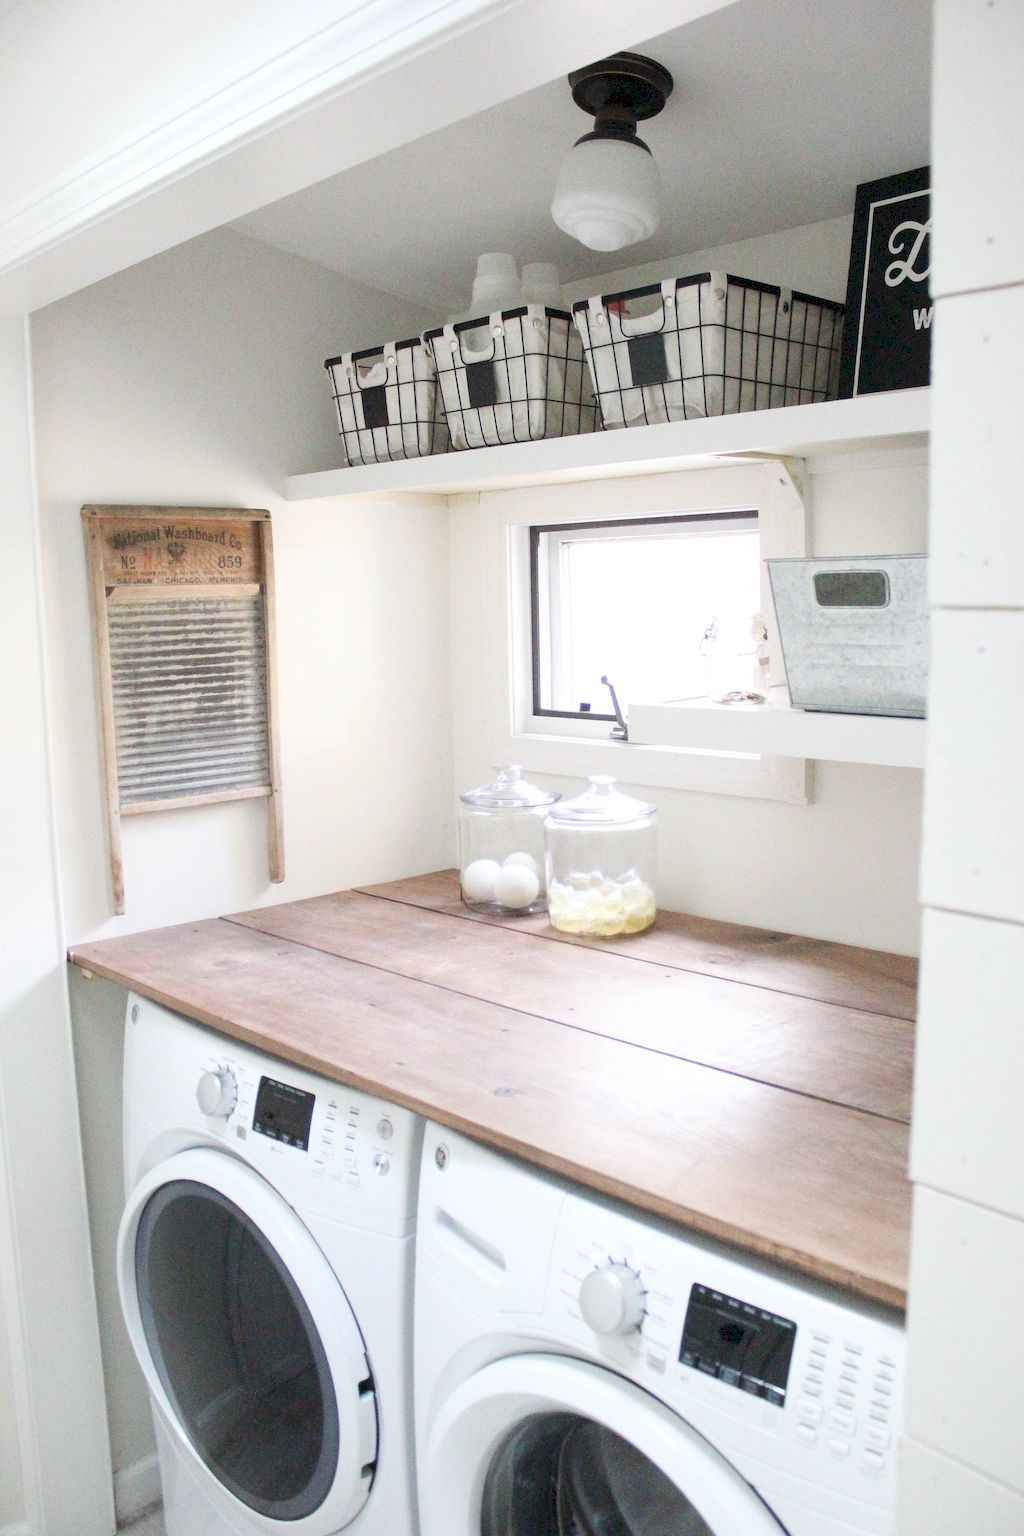 45 Rustic Farmhouse Laundry Room Design Ideas and Makeover (3)